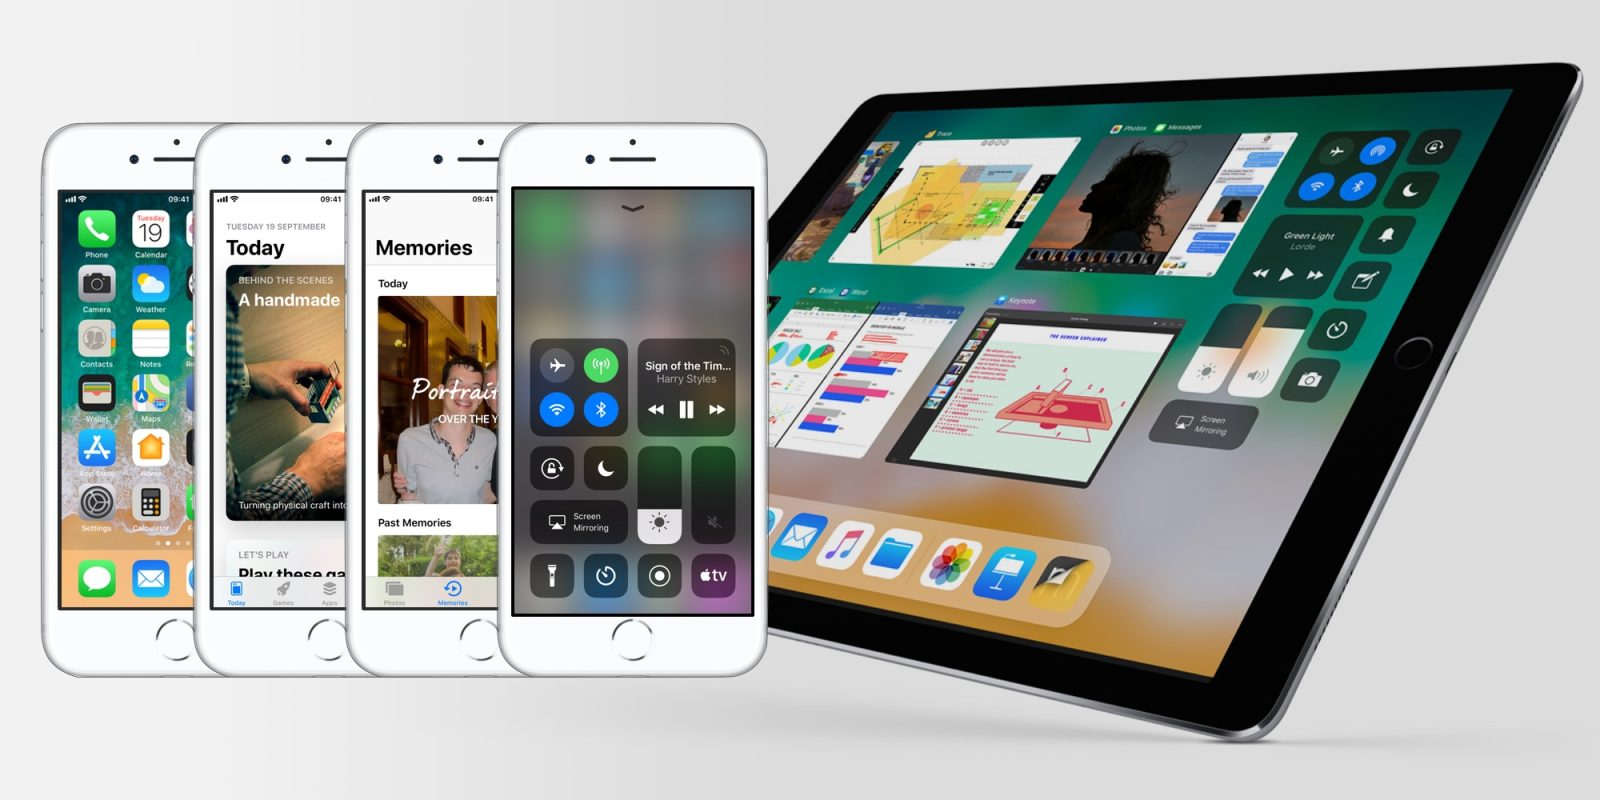 Le Releases Ios 11 For Iphone And Ipad Here S Everything New